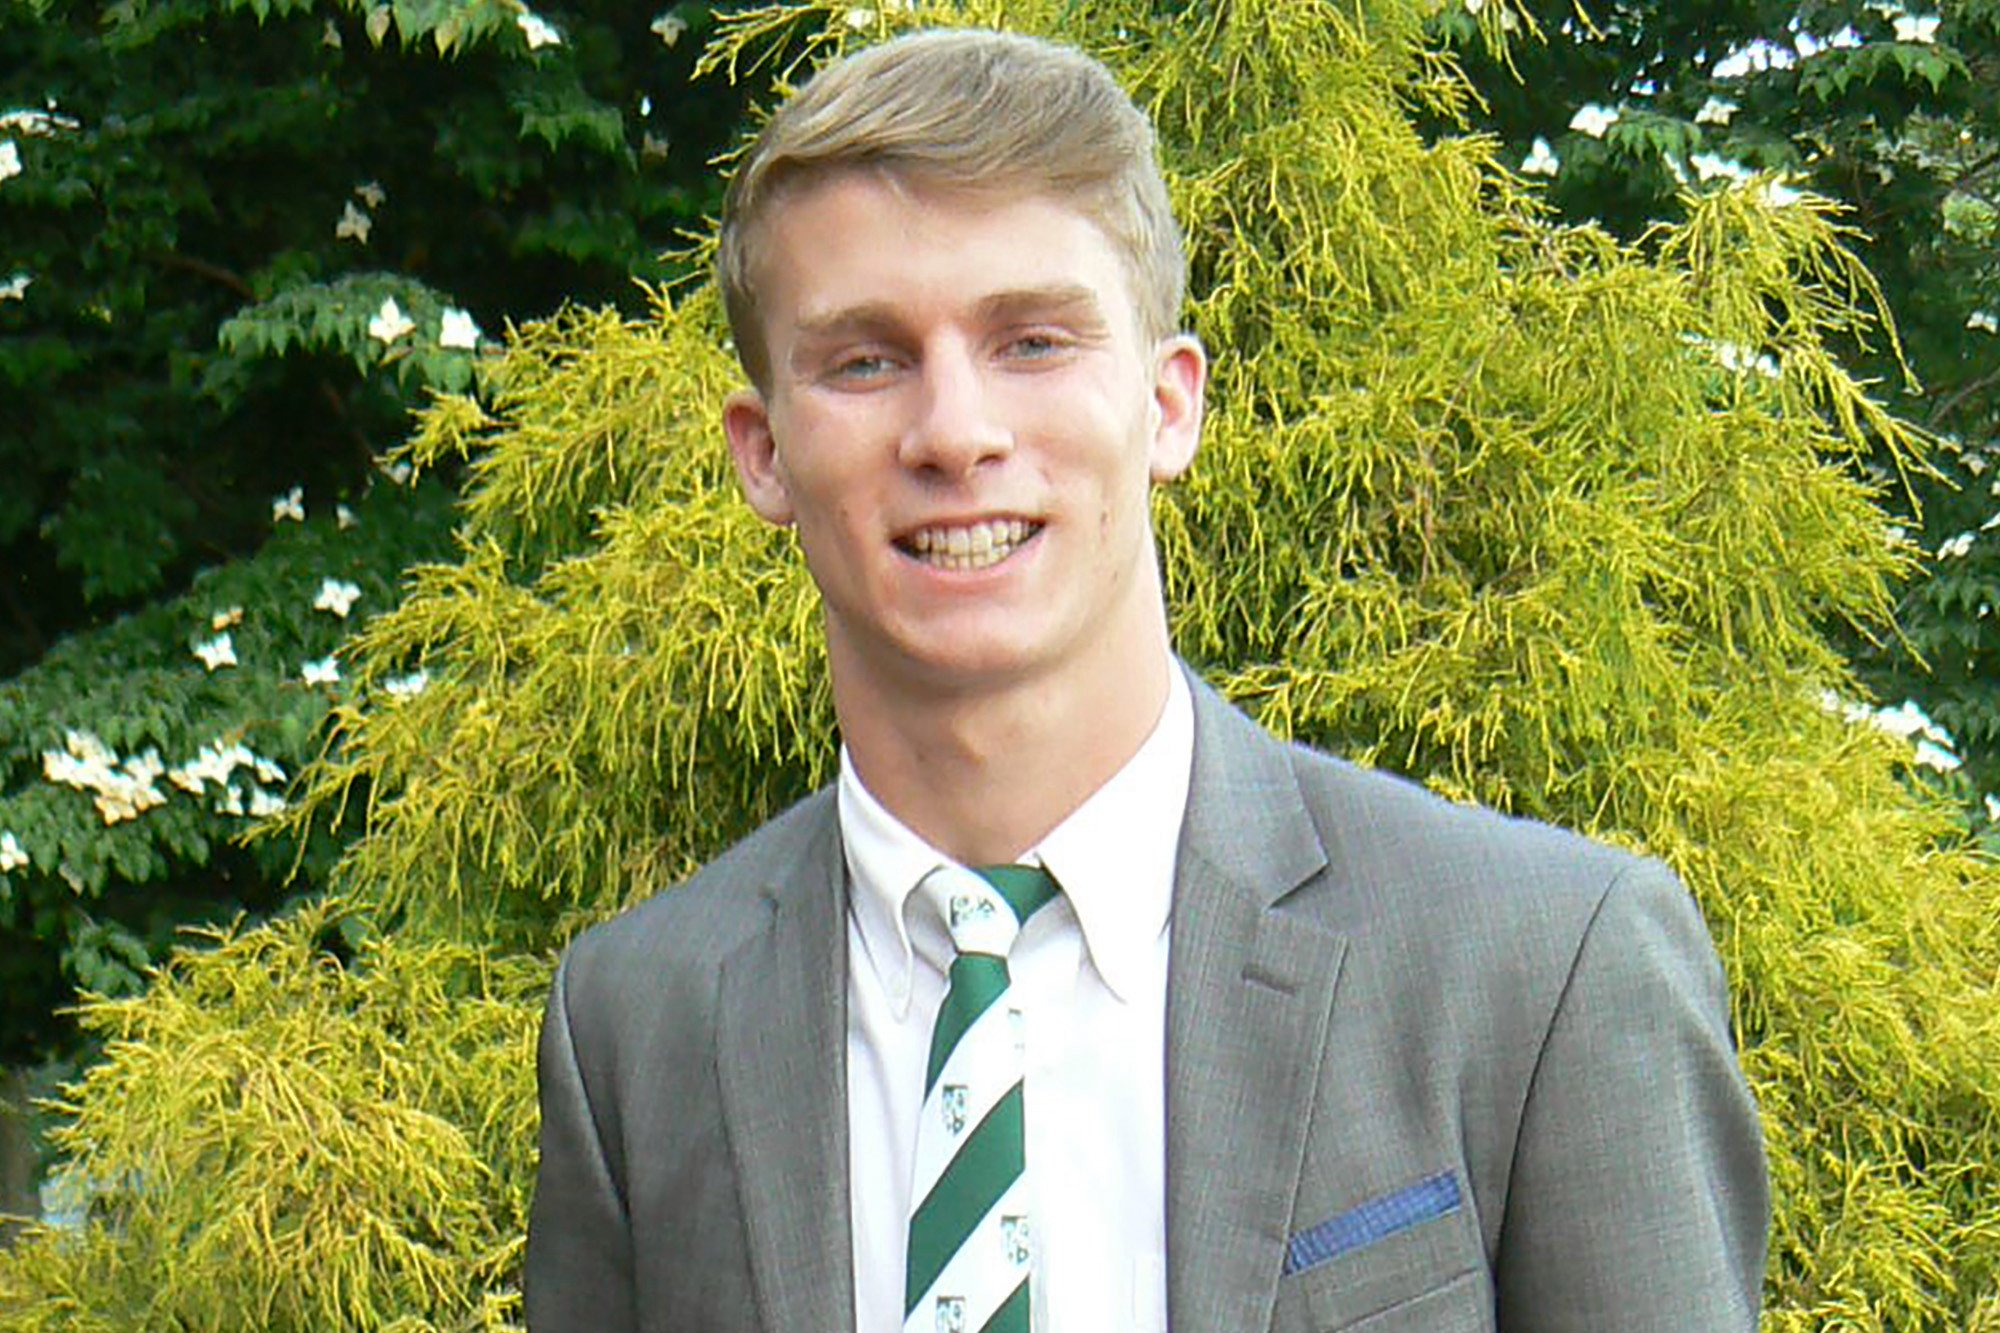 Body of college rugby player found at base of 'significant drop' in Bermuda